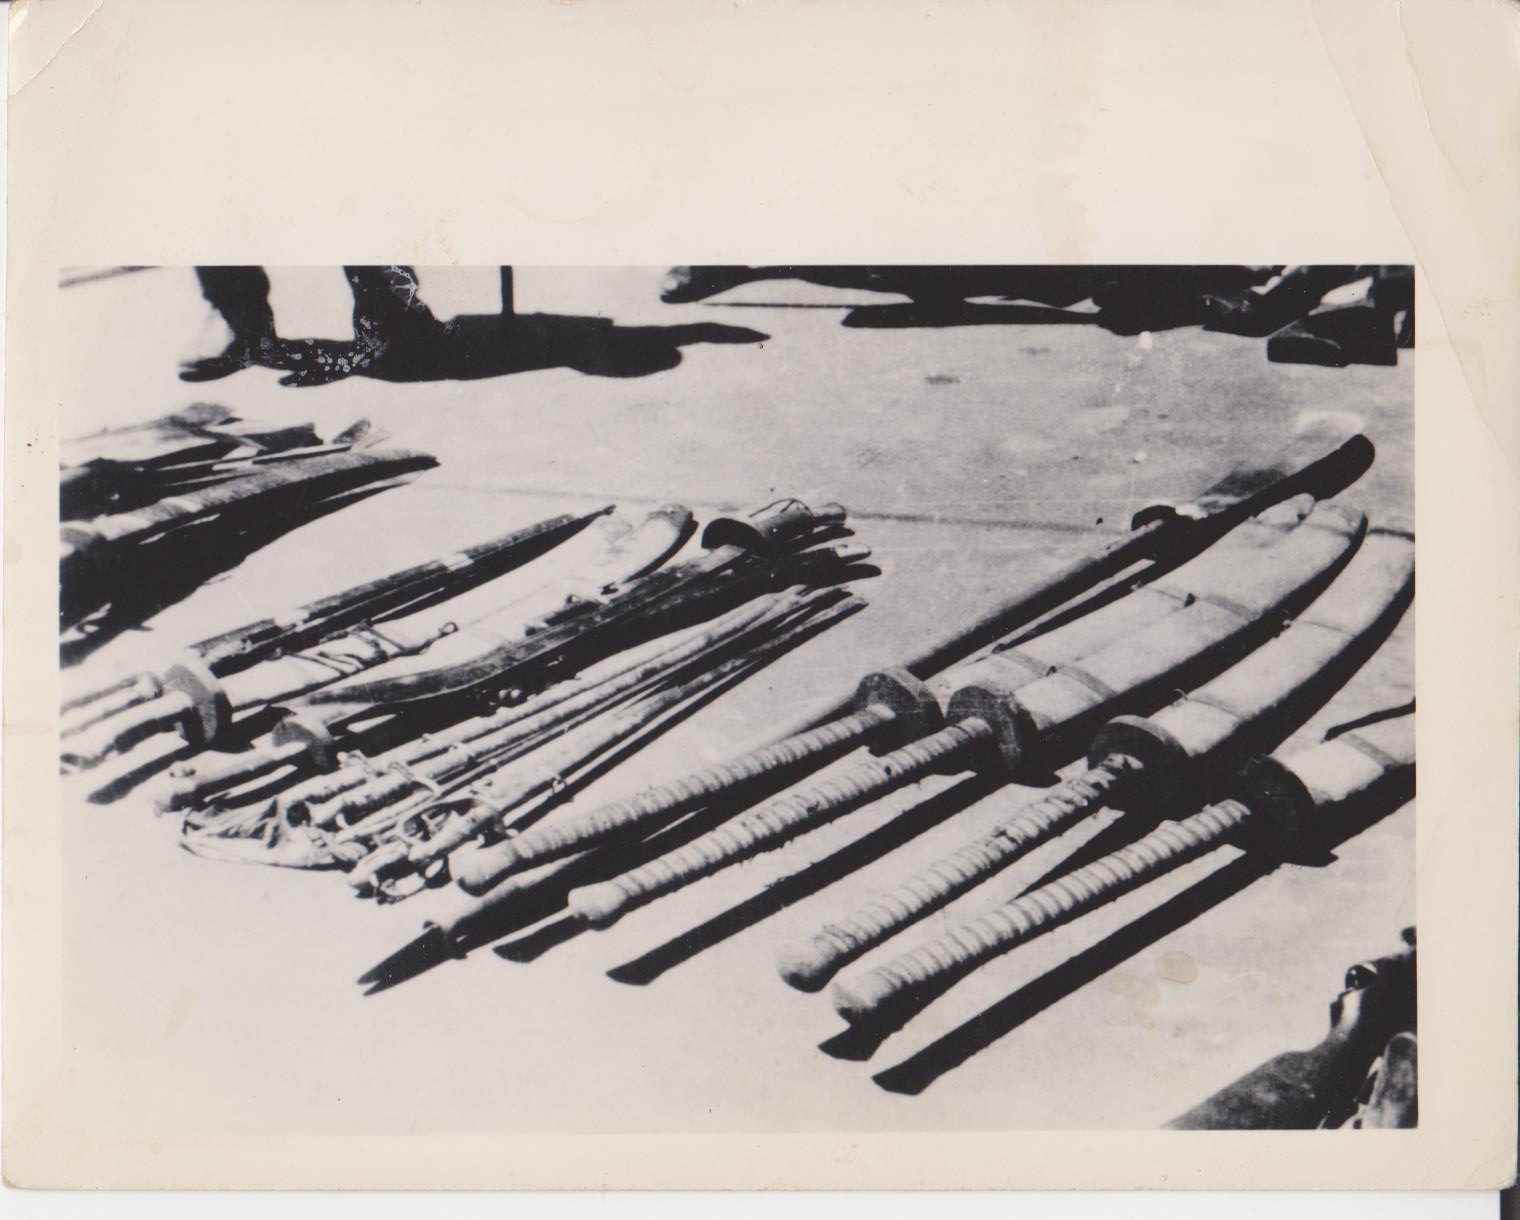 Through a Lens Darkly (19): China's other Swords during World War II